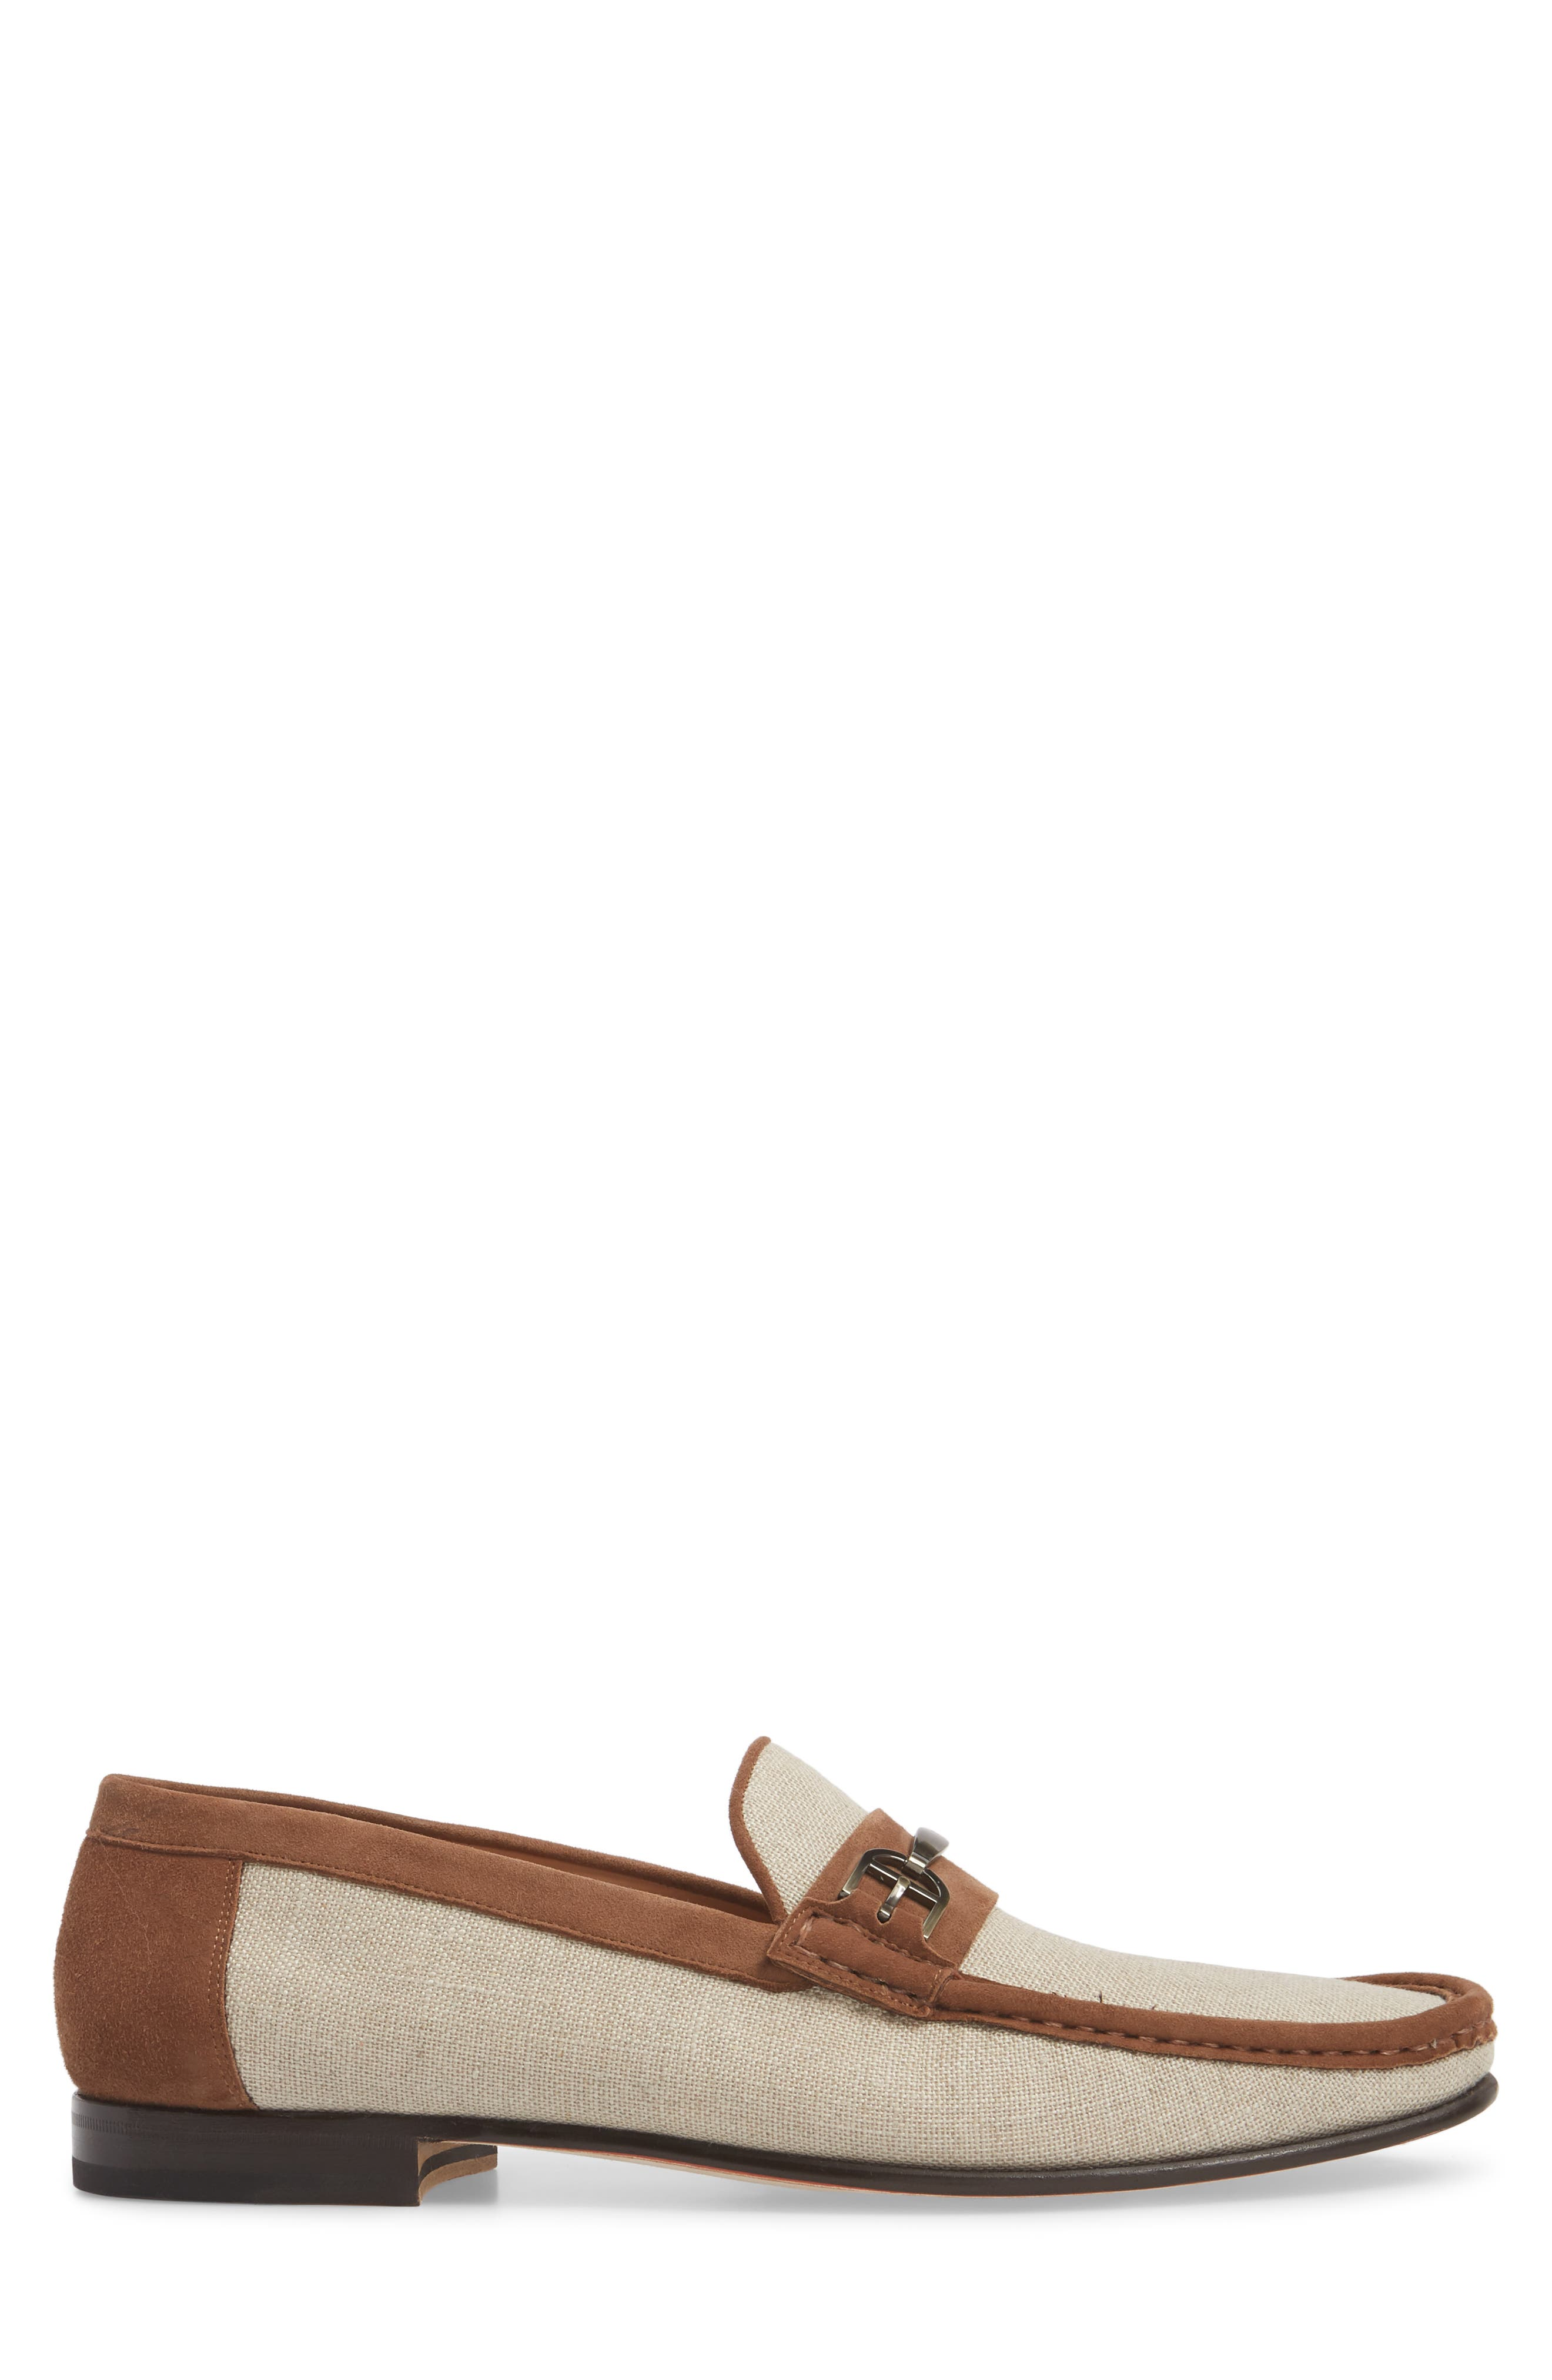 Jason Two-Tone Bit Loafer,                             Alternate thumbnail 3, color,                             BONE/ COGNAC LINEN/ SUEDE